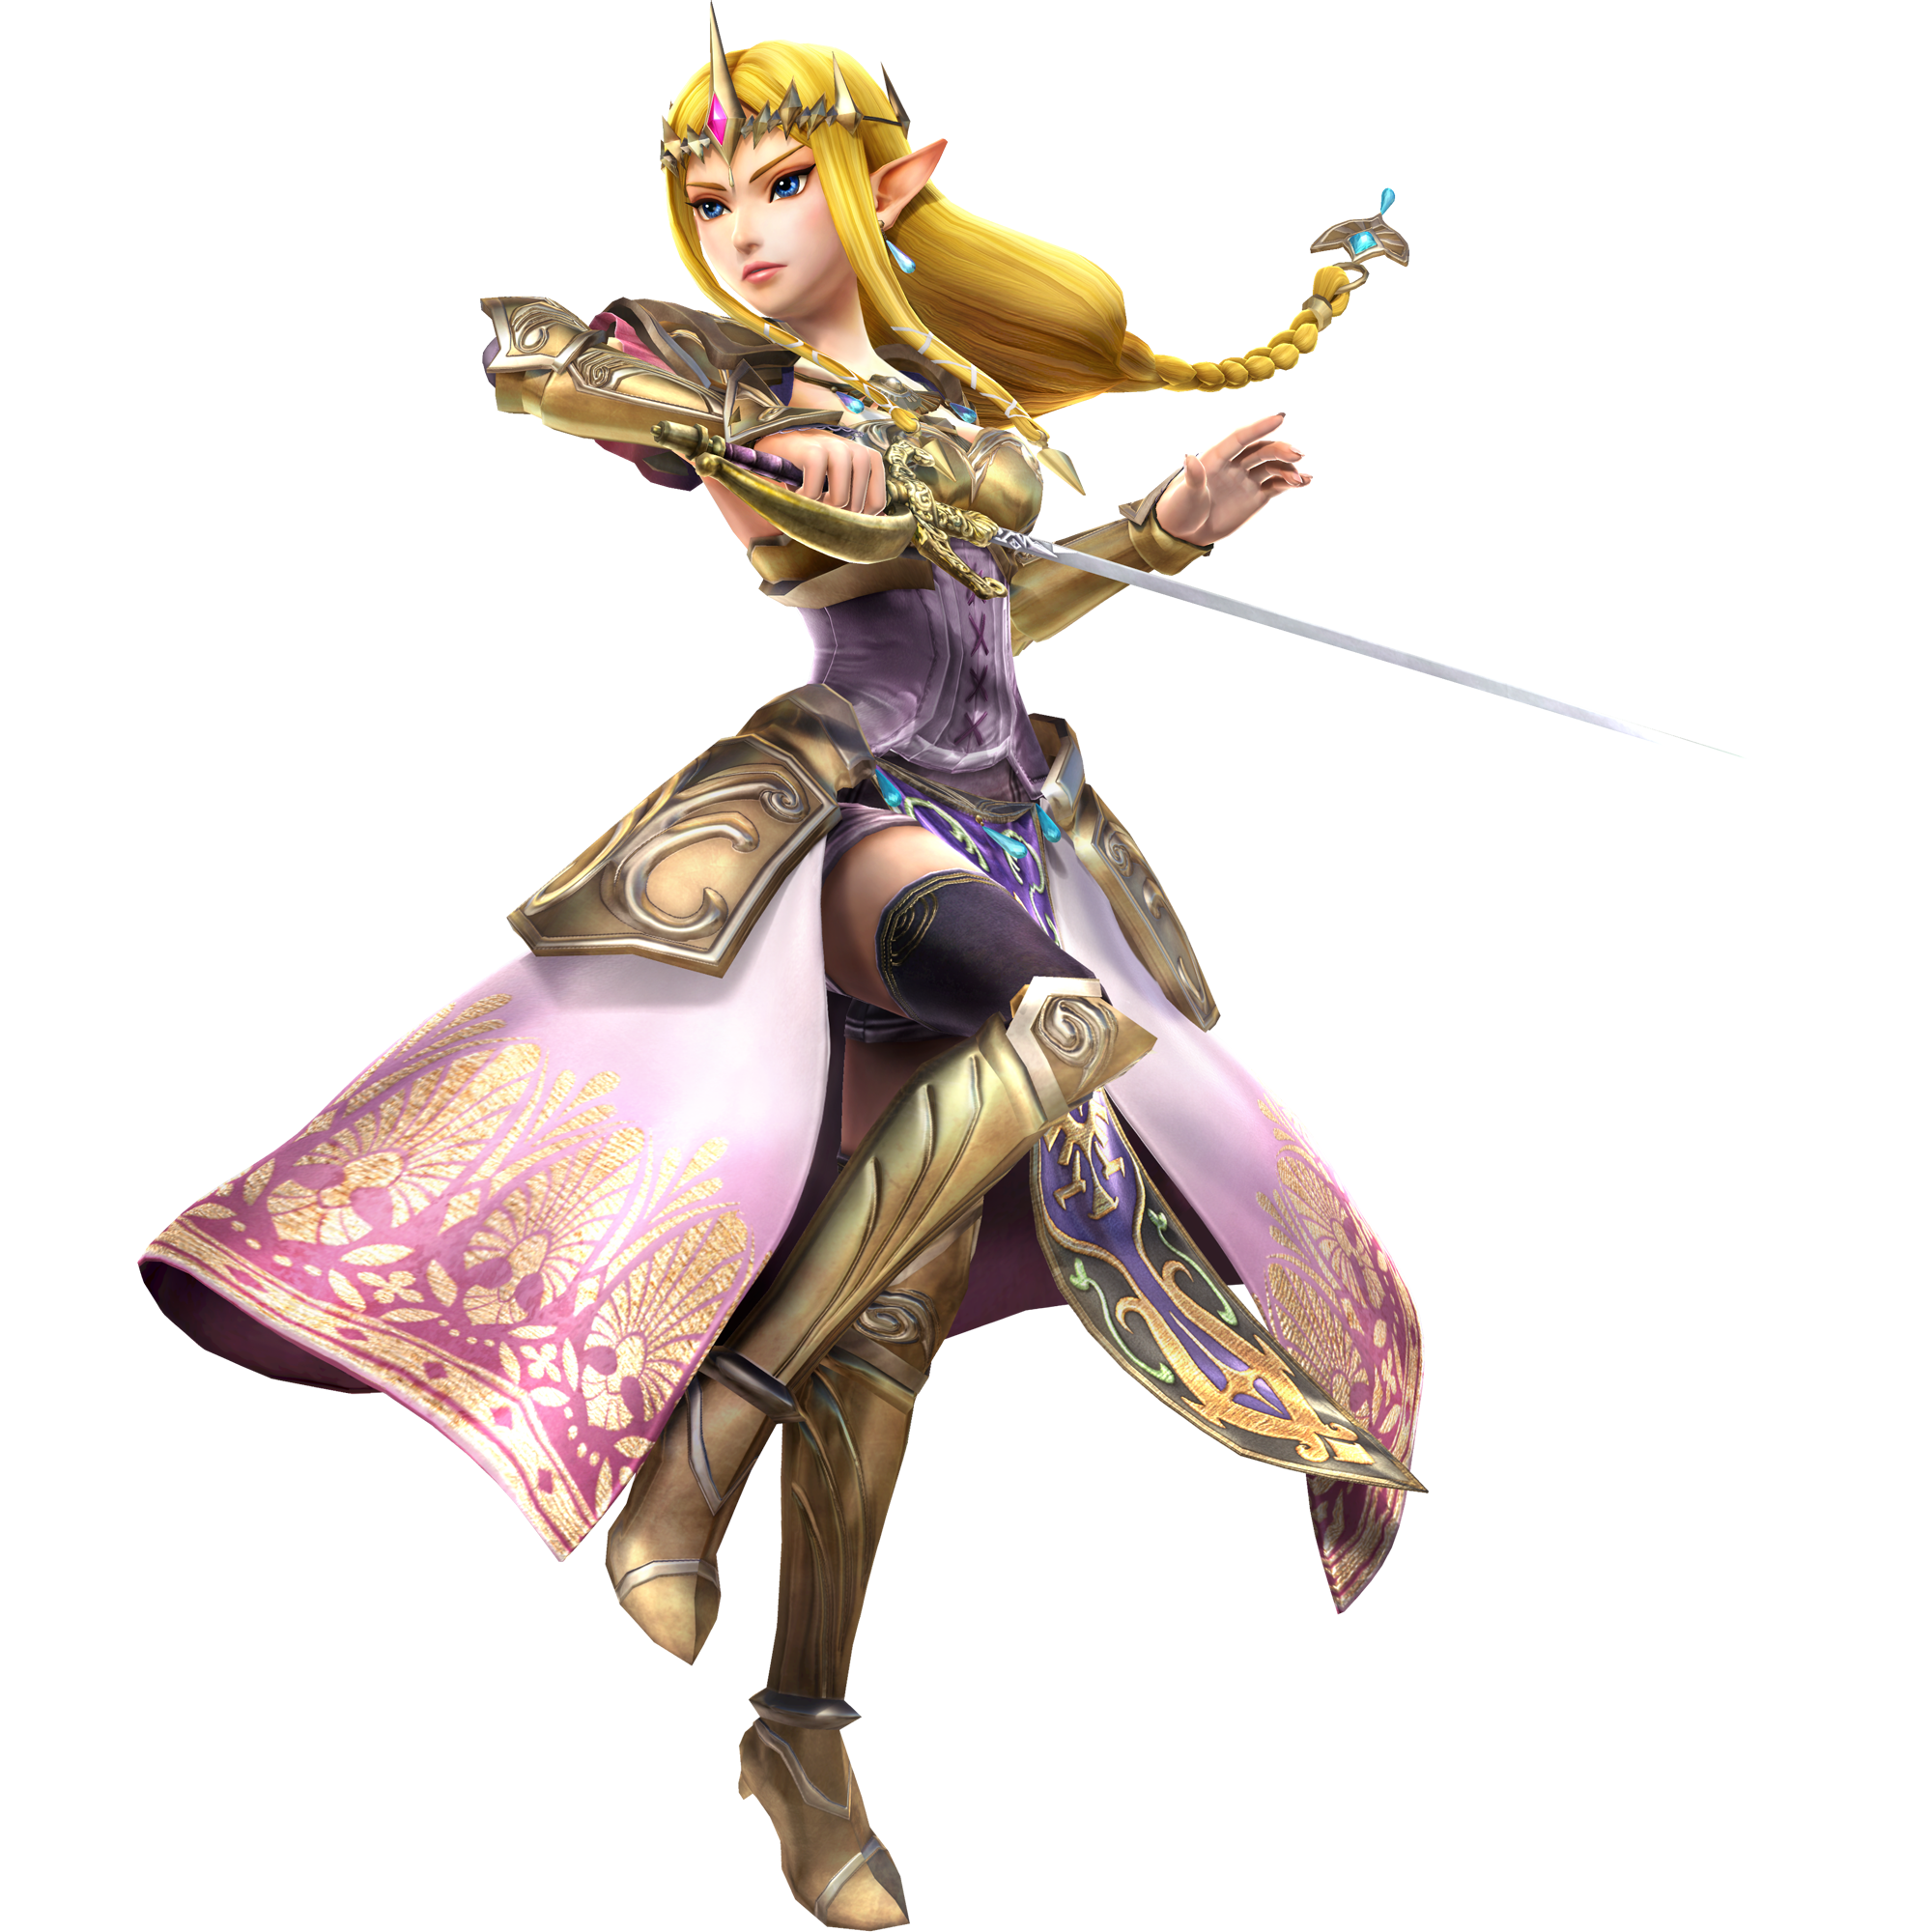 Image zelda rapier koei wiki fandom powered for Chambre zelda